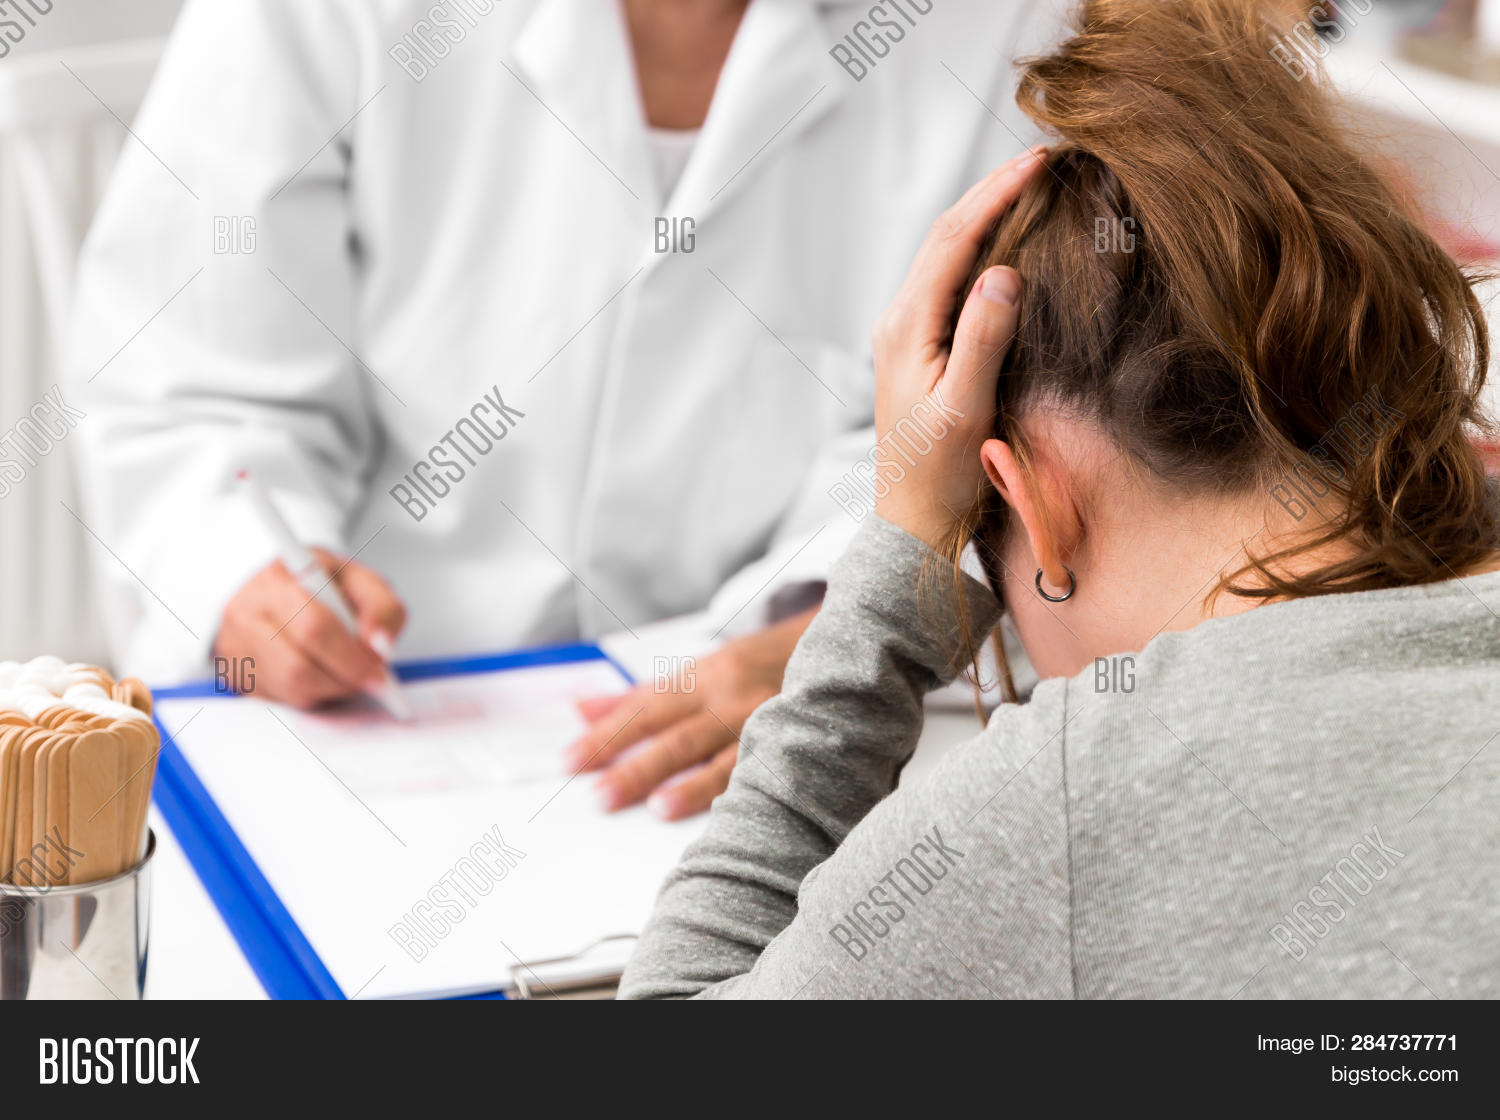 afflictions,anamnesis,background,bipolar,burnout,certificate,clinic,collapse,concept,consultation,depression,depressive,doctor,female,germany,headache,health,healthcare,help,hospital,medical,medicine,mental,migraine,note,office,pain,painfull,patient,person,prescription,psychiatrist,pysical,shrink,sick,stress,surgery,white,woman